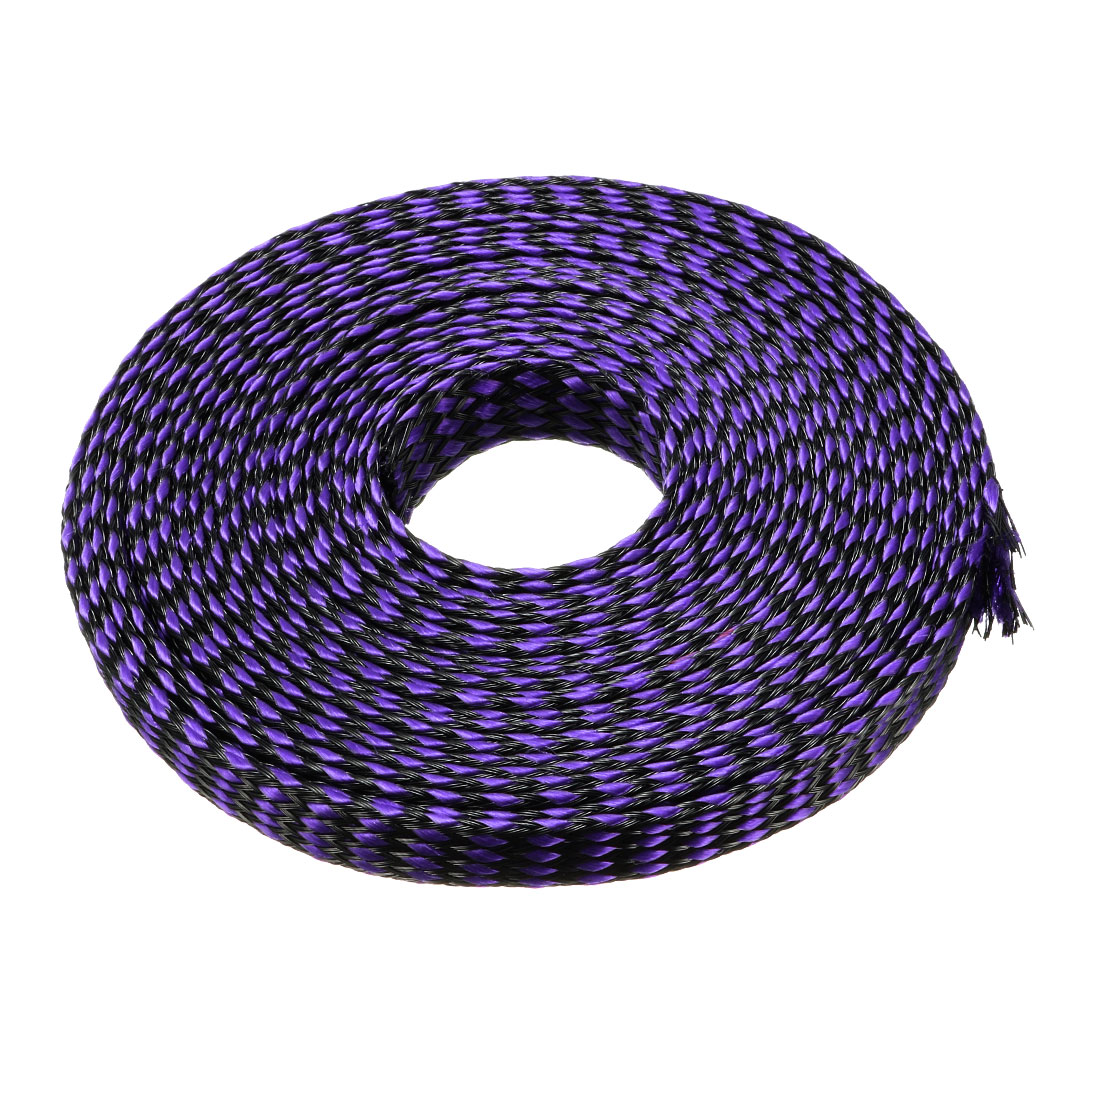 12mm Dia Tight Braided PET Expandable Sleeving Cable Wrap Sheath Black Purple 16Ft Length